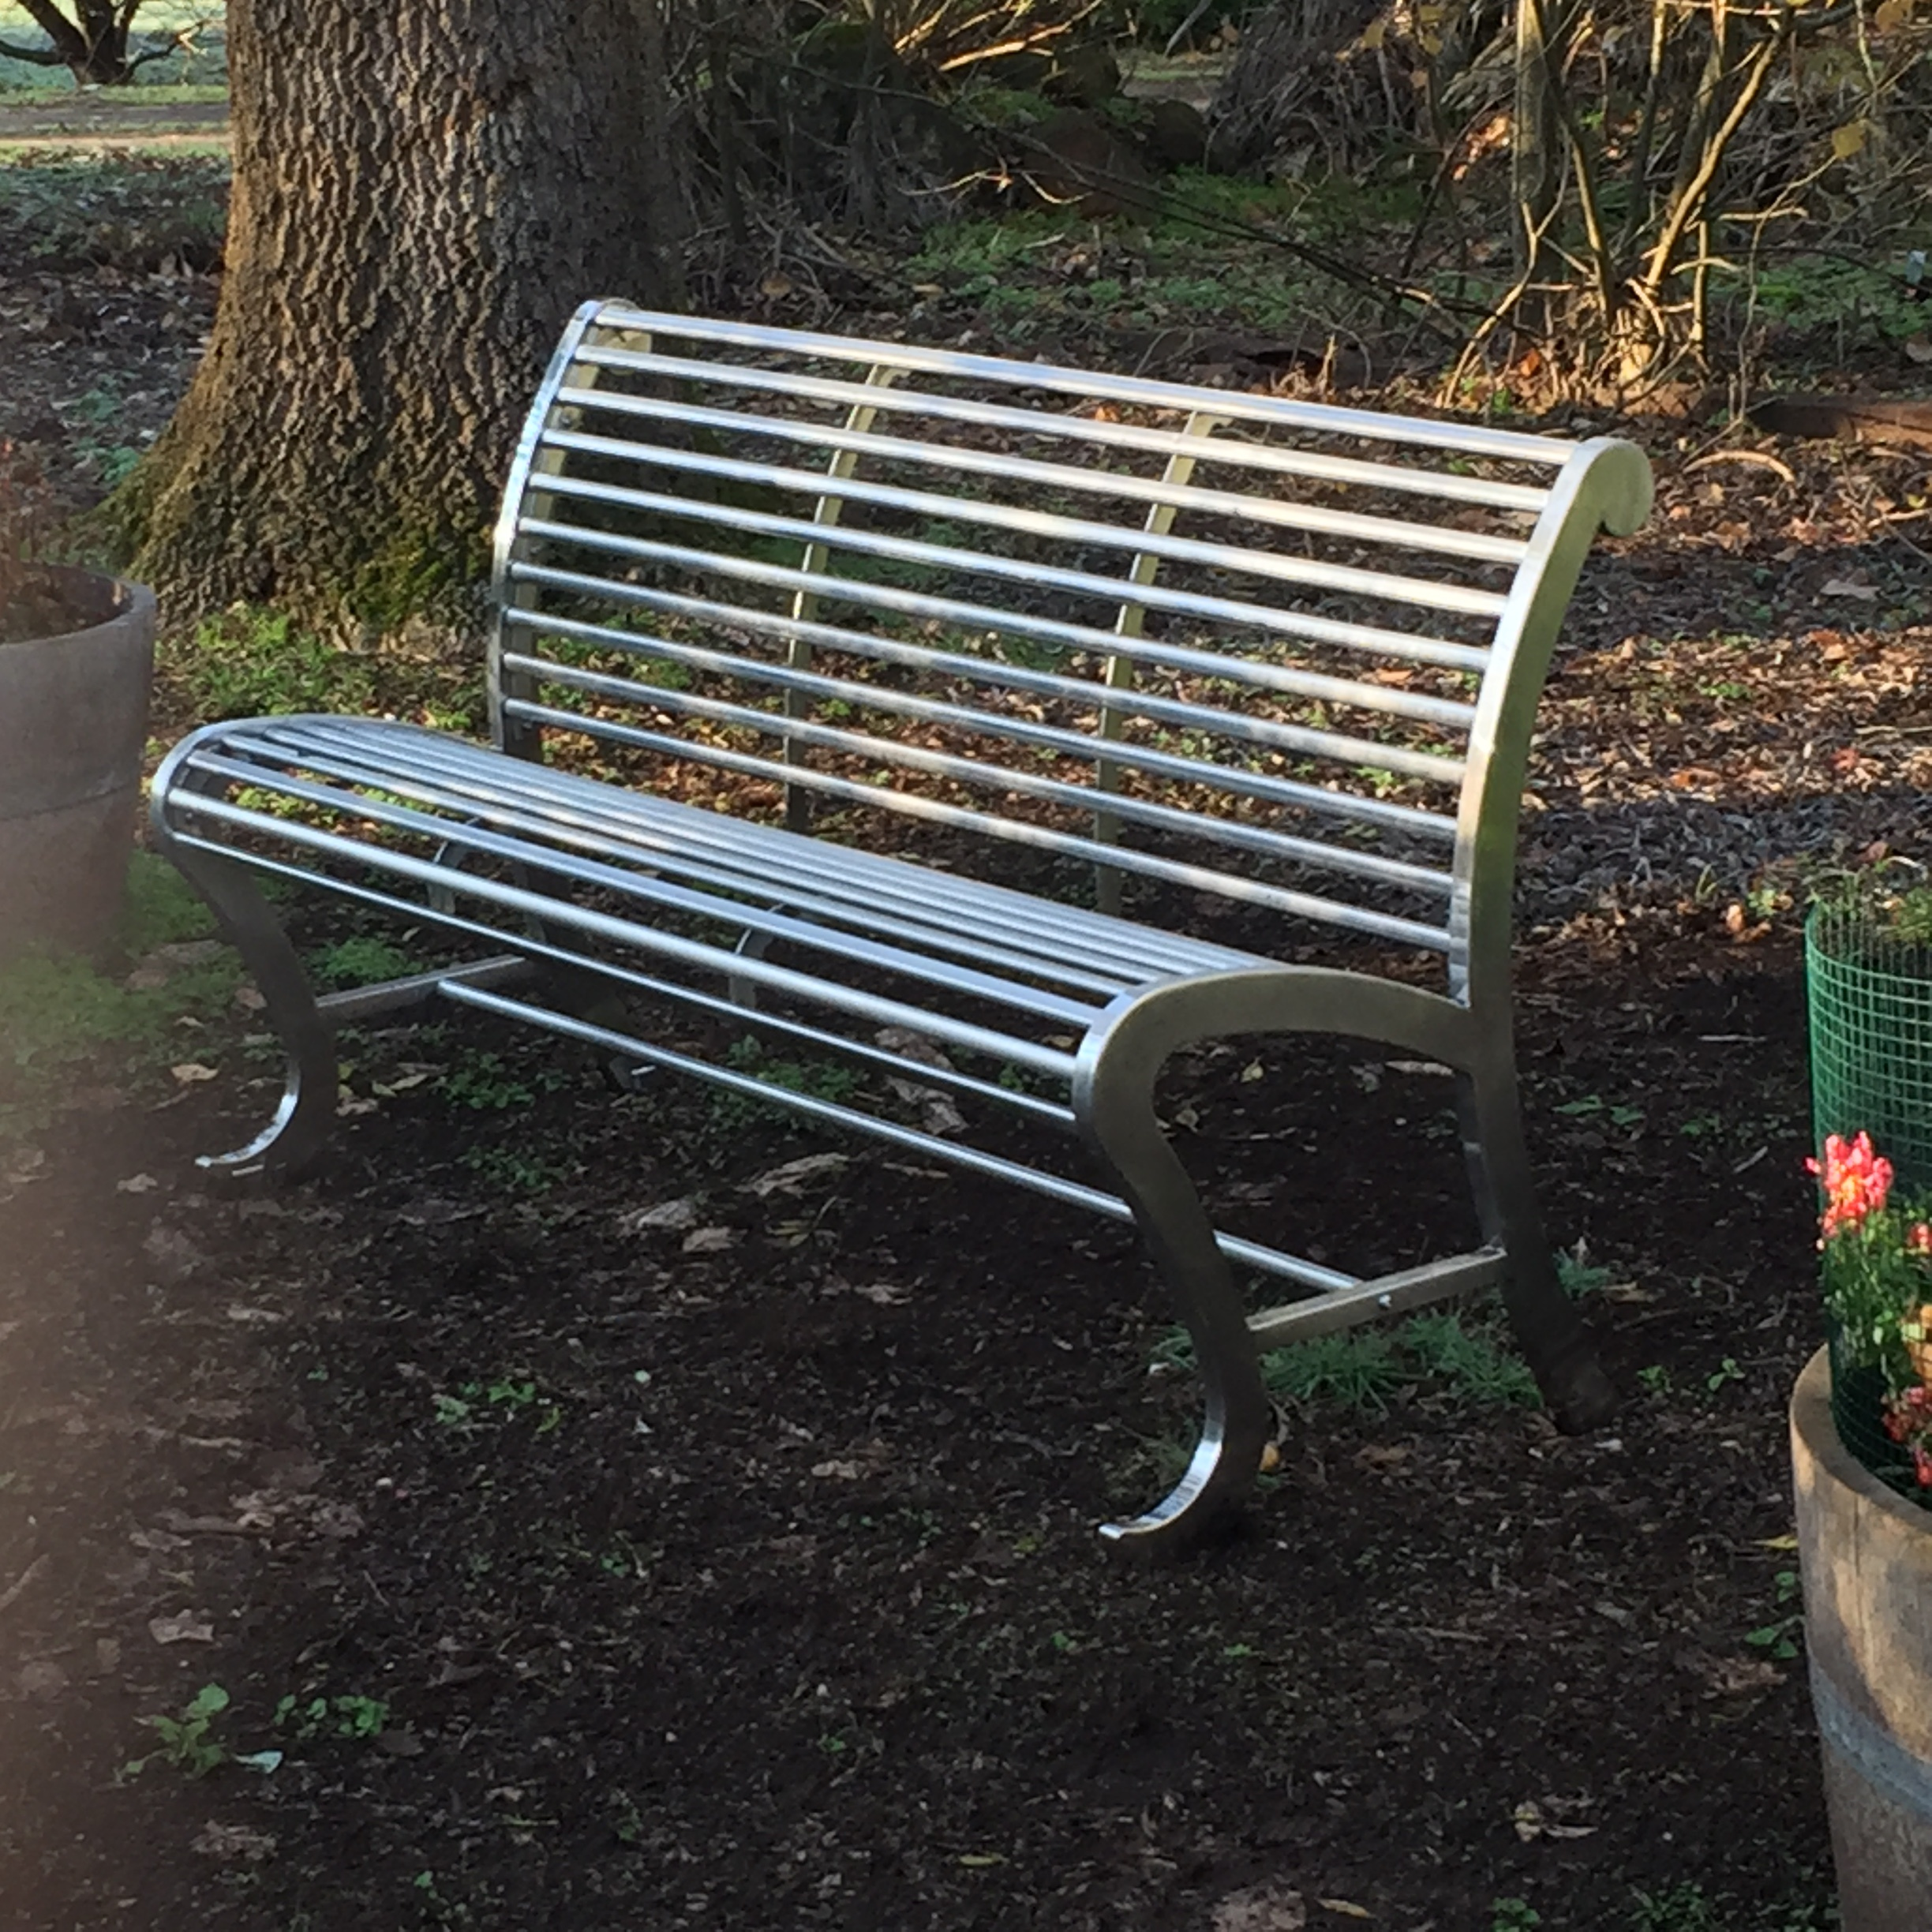 Stainless Steel Marine Grade 316 Park Benches 1550mm L X 651 Mm W X 893 Mm H Eco Elegance